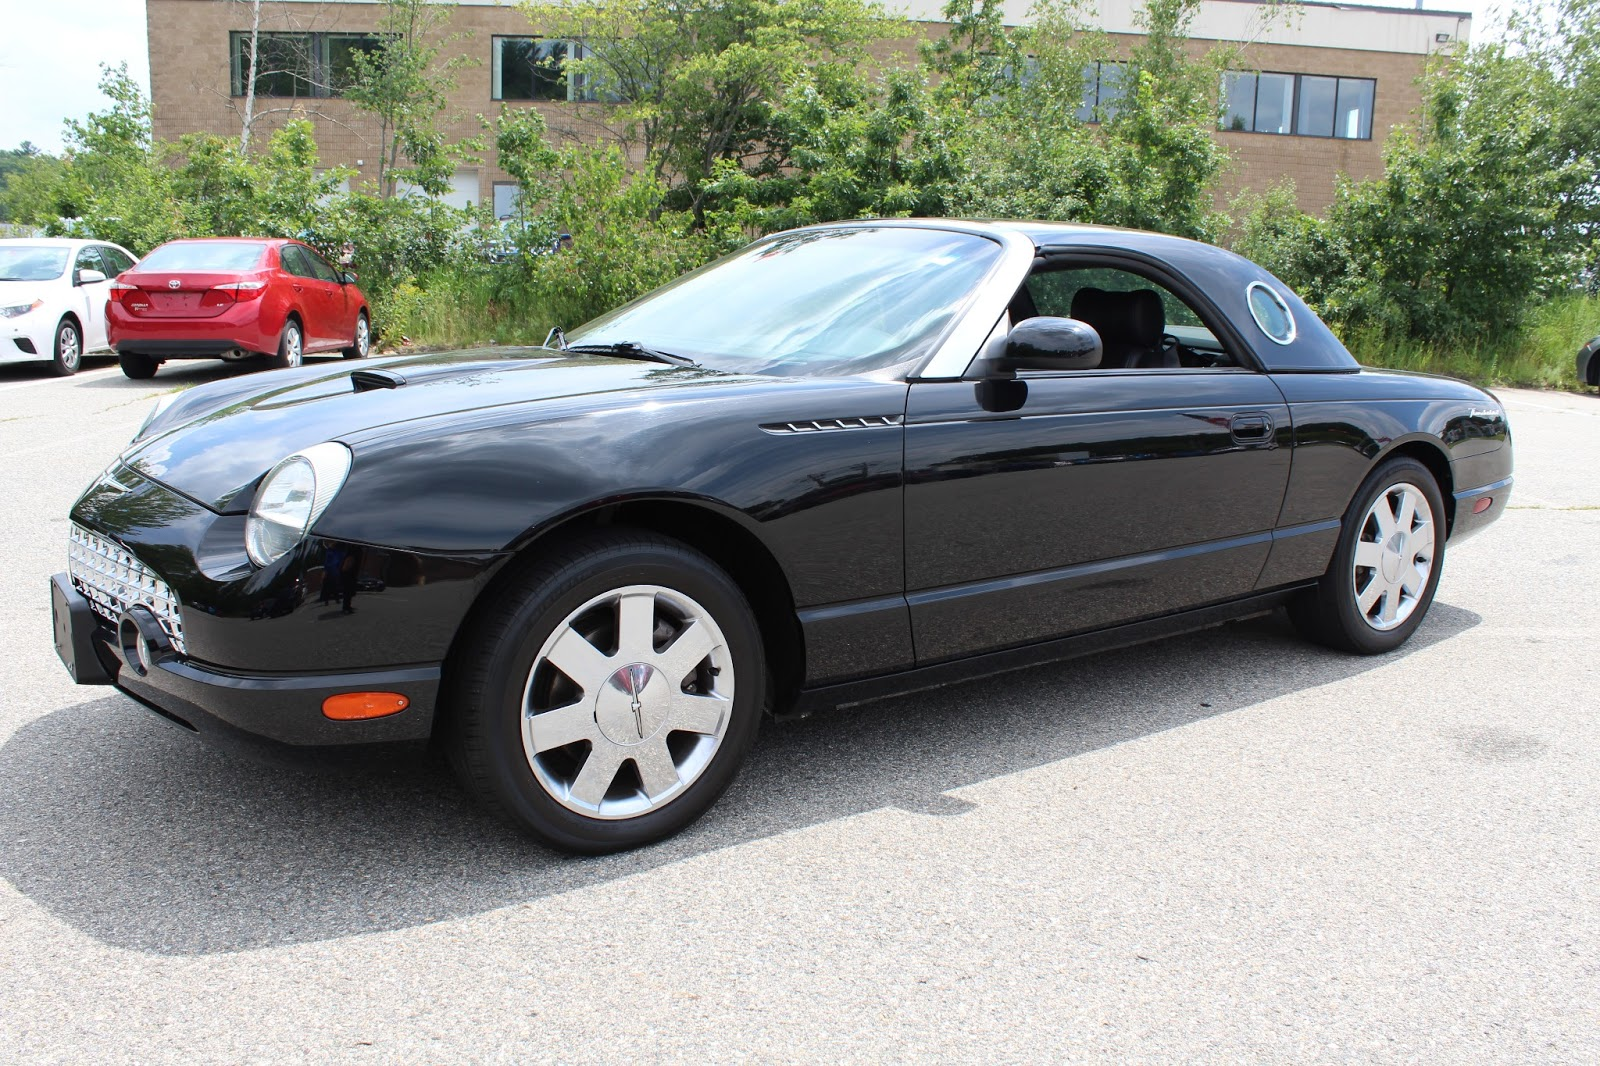 2002 Ford Thunderbird Sounds Like Good Value For A Sunday